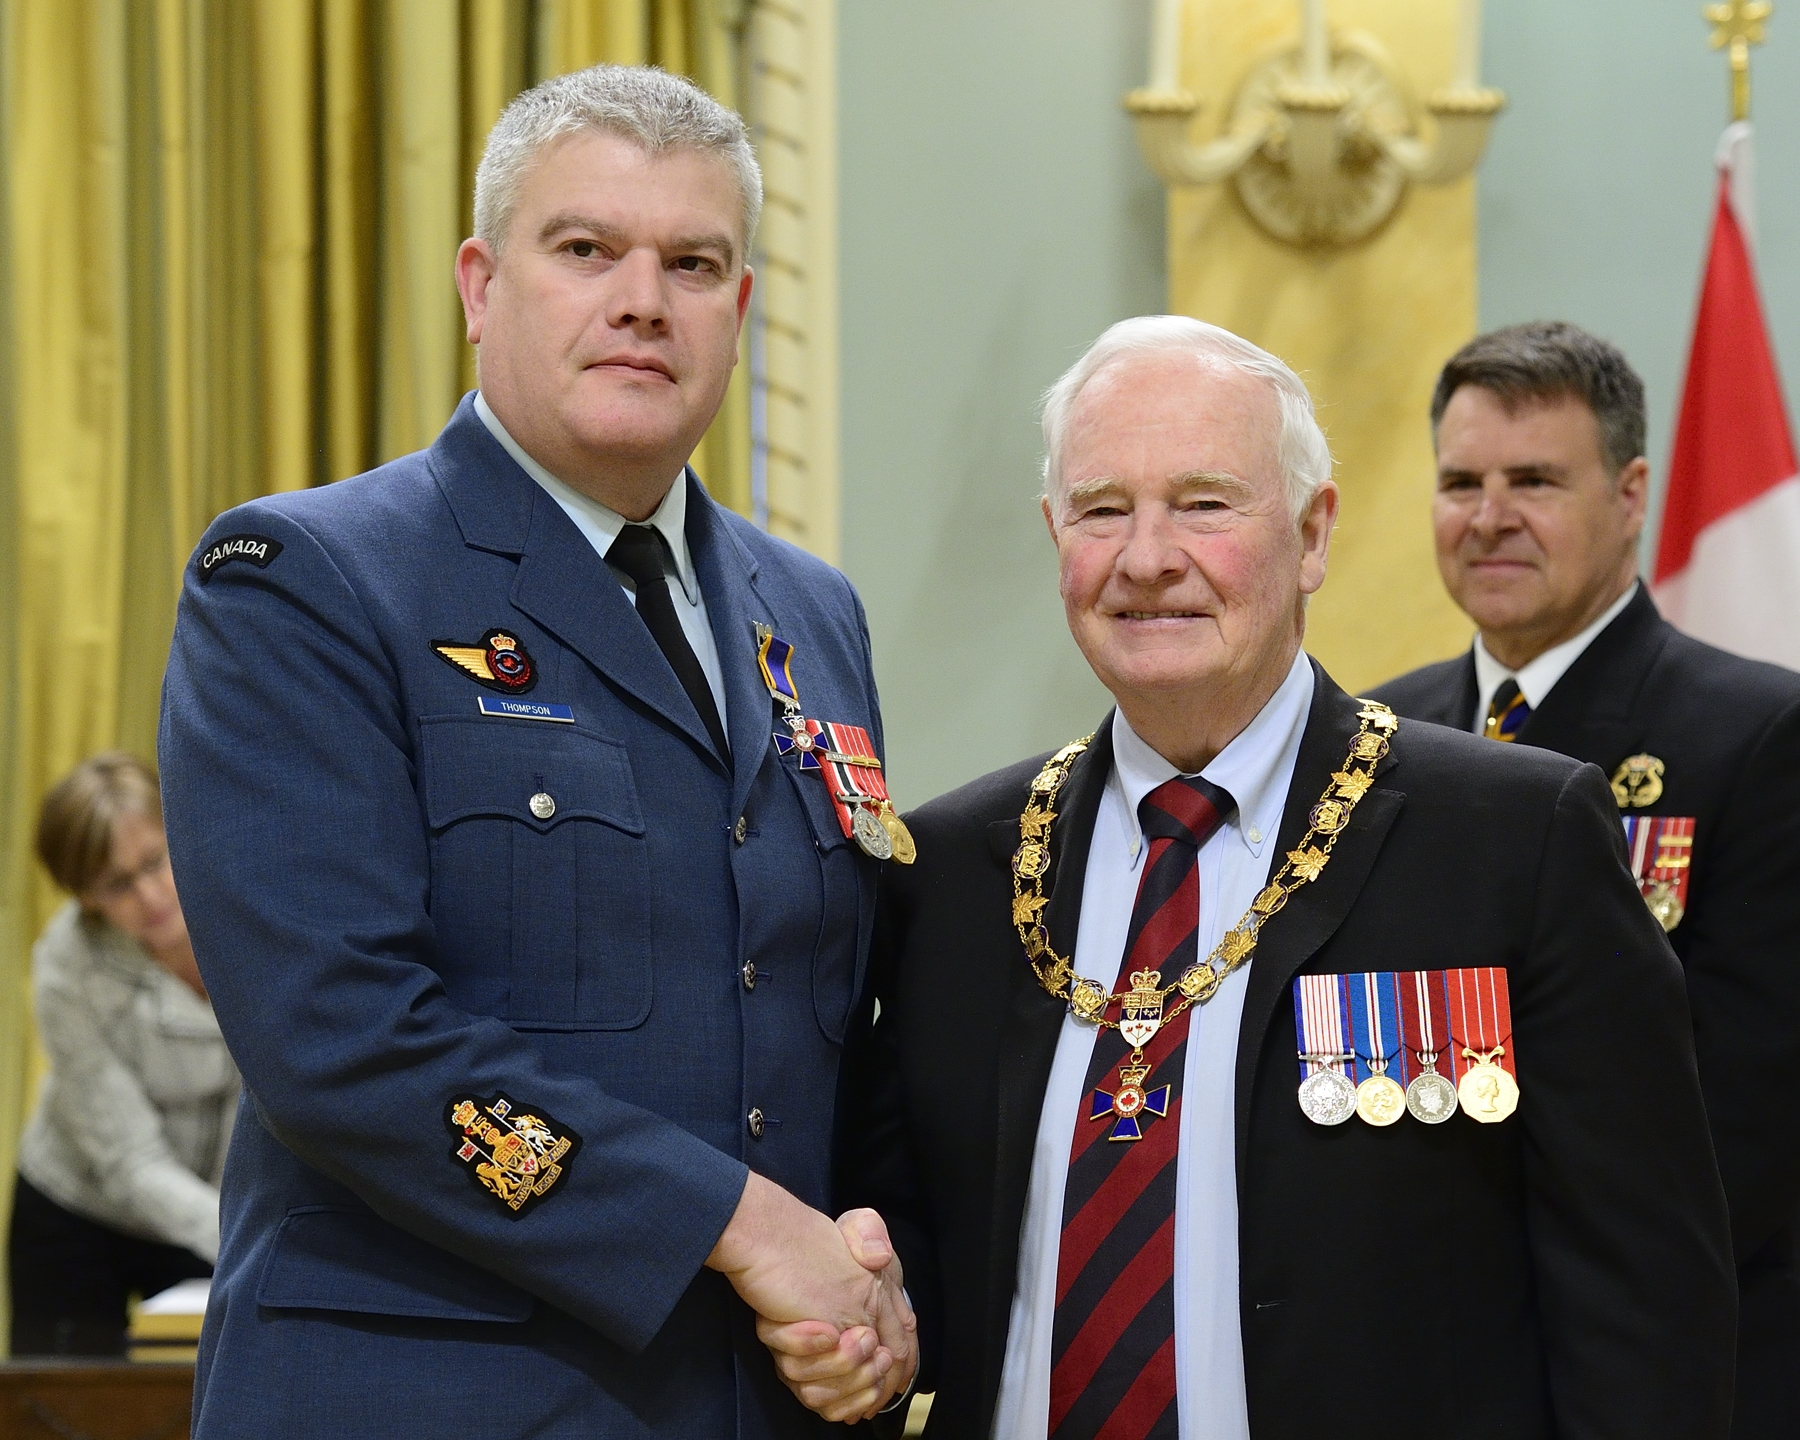 Governor General and Commander-in-Chief of Canada David Johnston presents the Order of Military Merit to Master Warrant Officer Thomas Scott Thompson, MMM, CD, from 51 Aerospace Control and Warning Operational Training Squadron, Hornell Heights, Ontario. PHOTO: Sergeant Johanie Mahieu, Rideau Hall ©, GG05-2017-0075-063-thompson